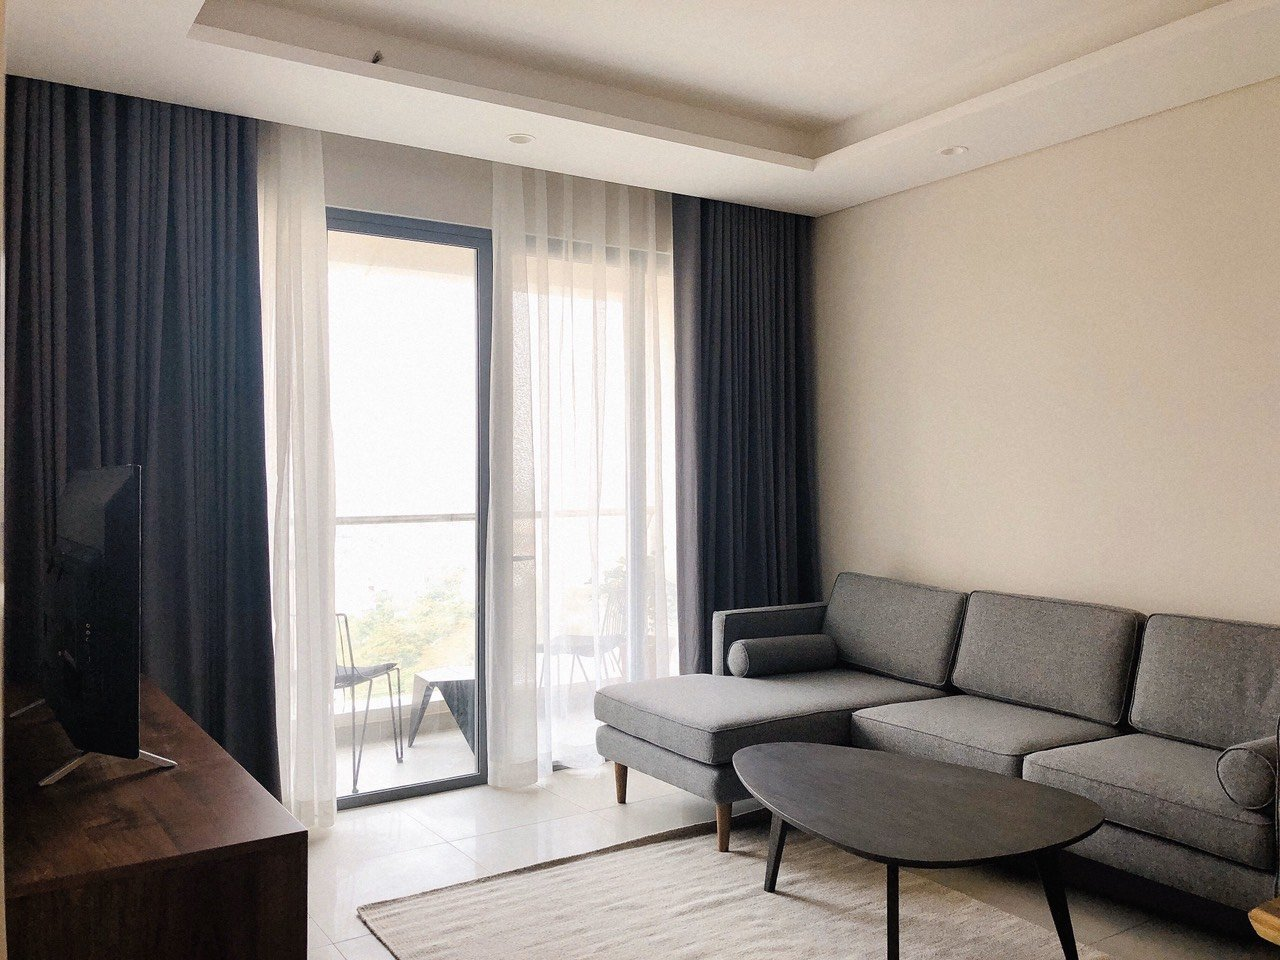 DI0888 - Diamond Island Apartment For Rent & Sale in Ho Chi Minh City - 2 bedroom